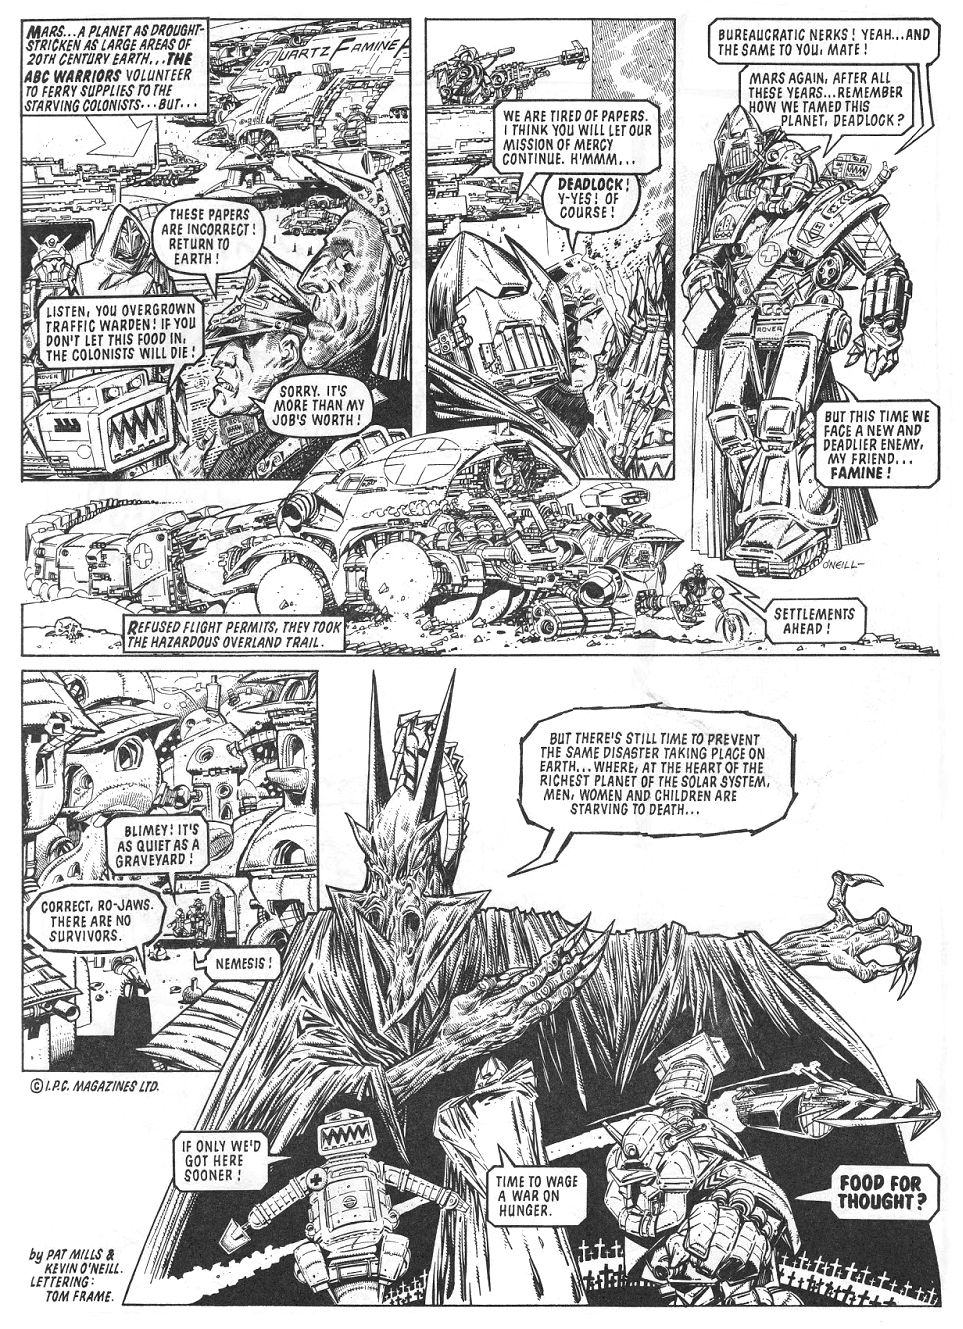 Kevin O'Neill_Food for thought, rare1980s famine relief fanzine art